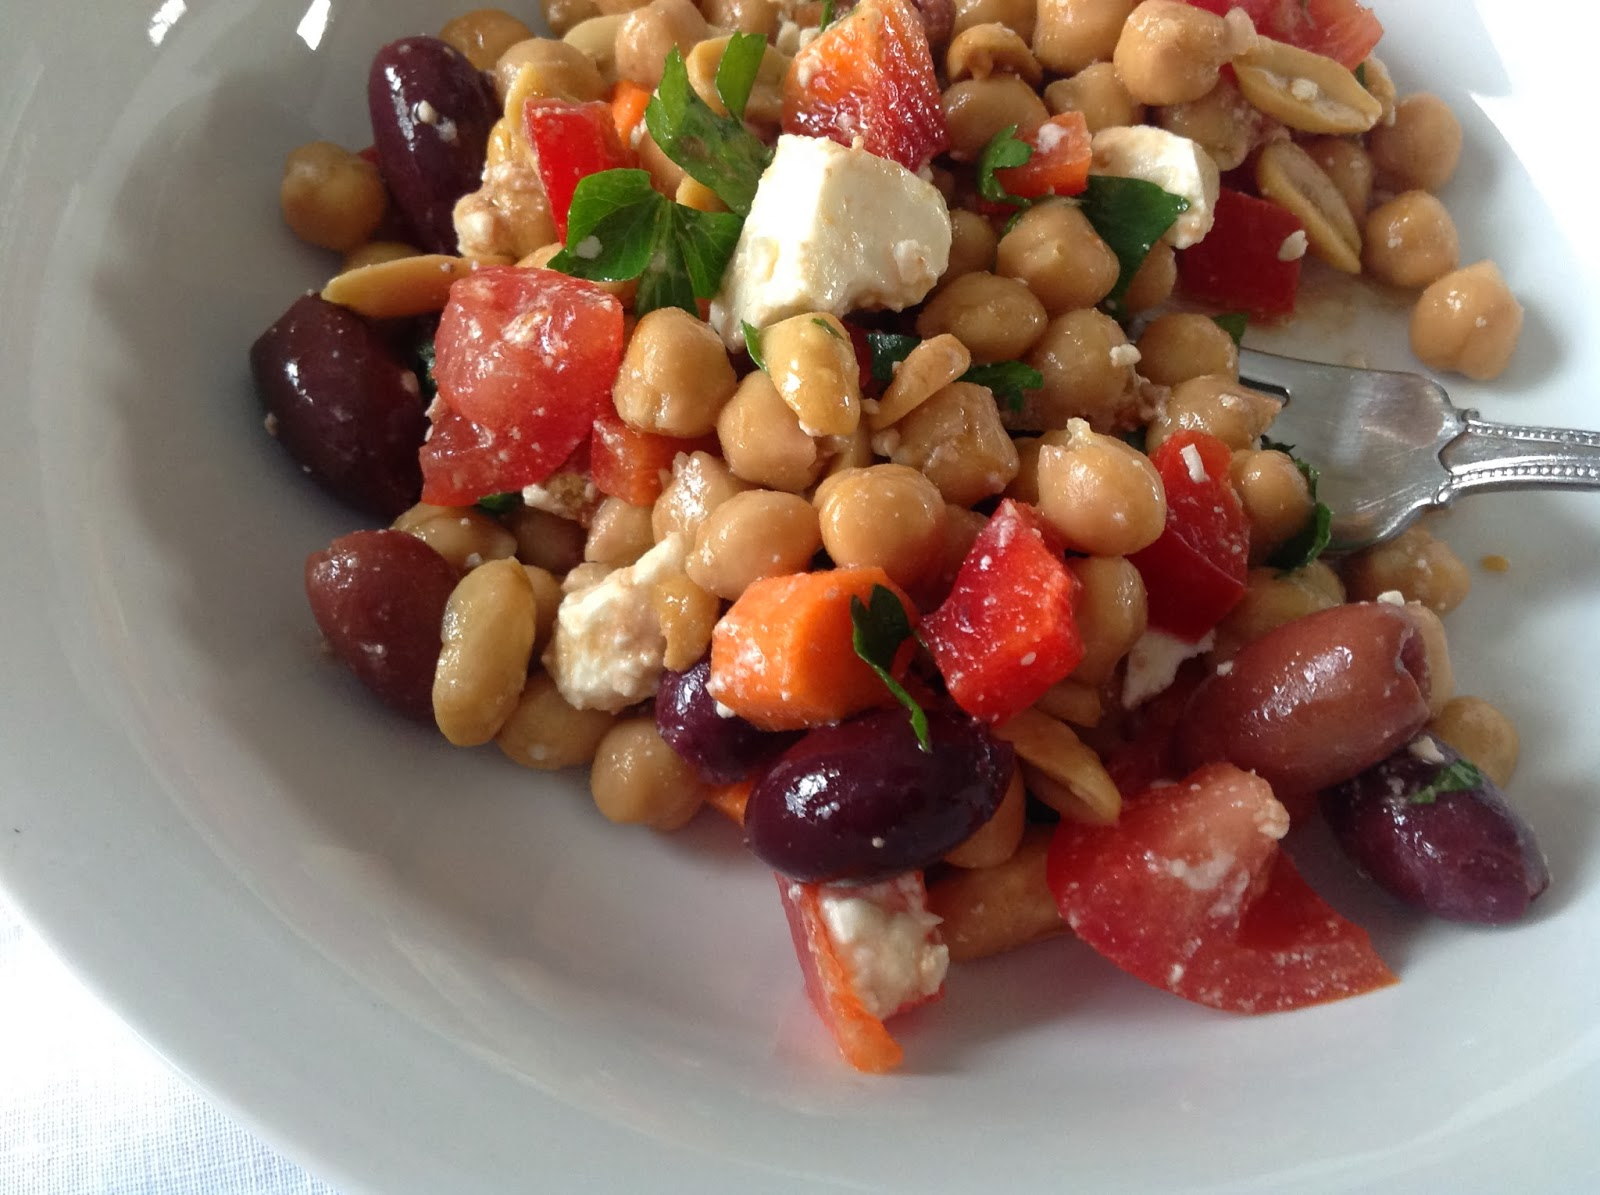 Crunchy Greek Salad with Chickpeas from Food Therapy